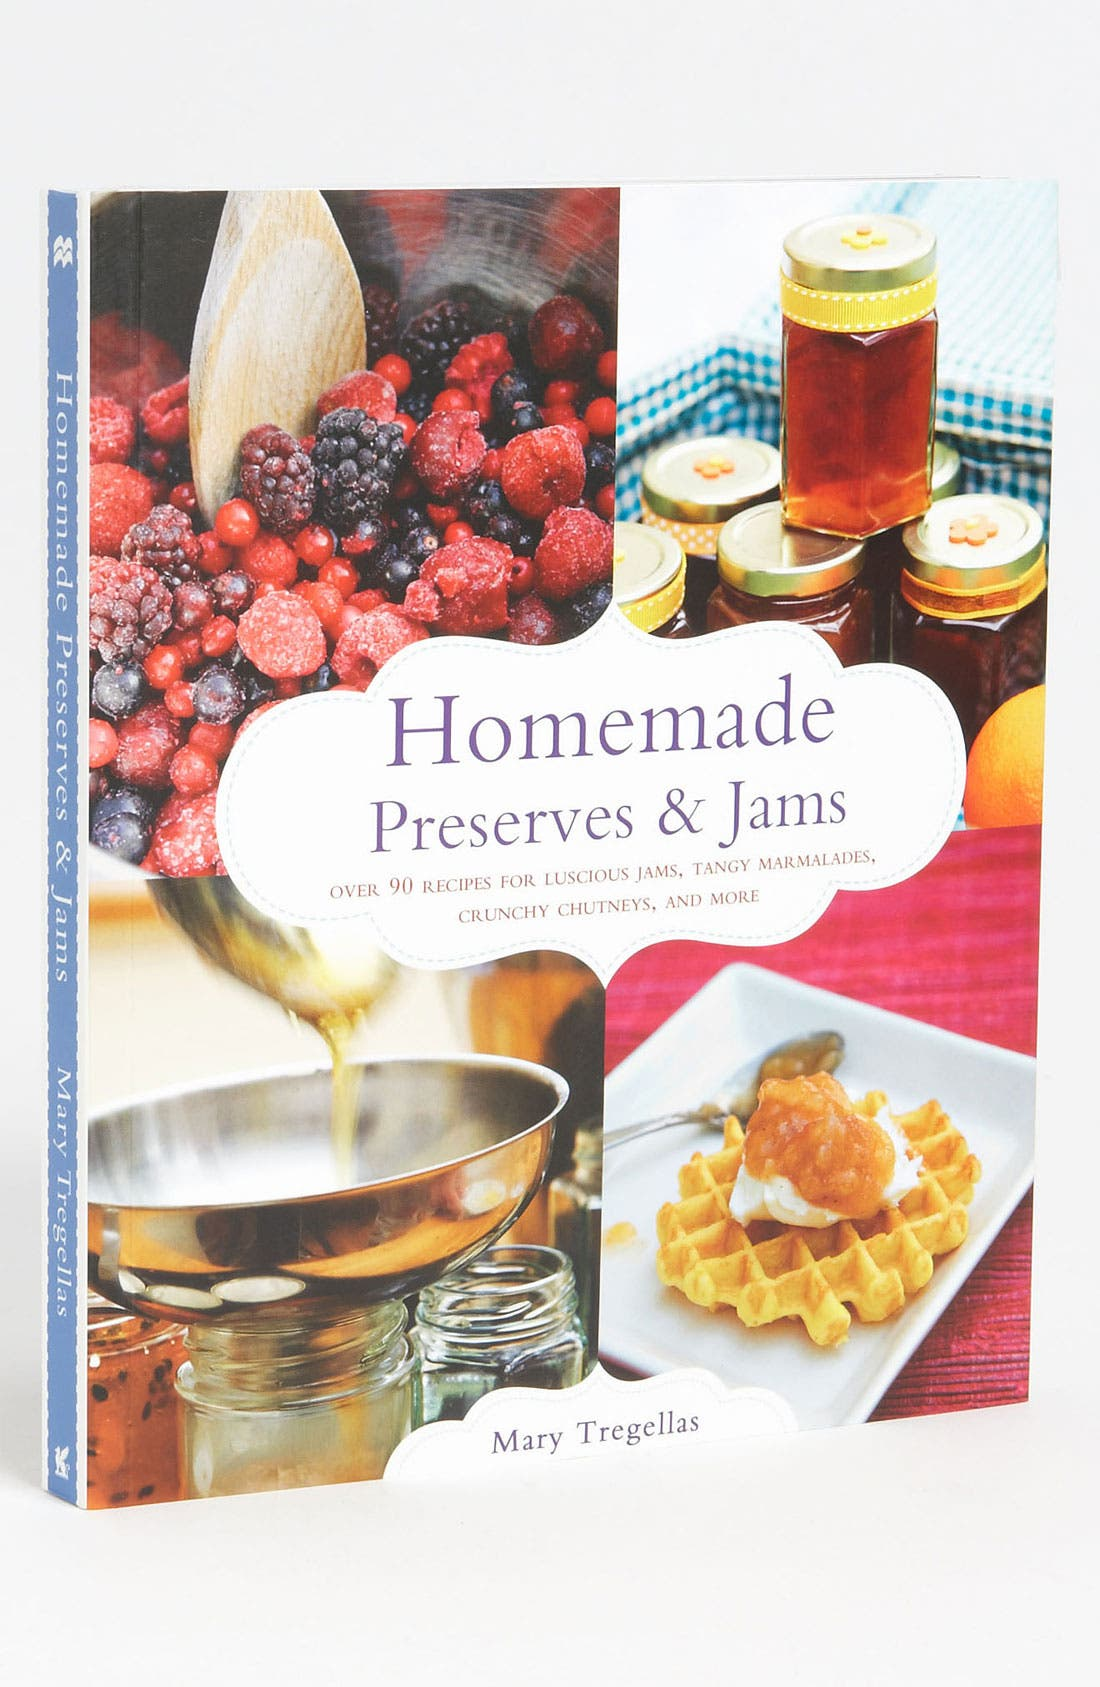 Alternate Image 1 Selected - Mary Tregellas 'Homemade Preserves & Jams' Recipe Book